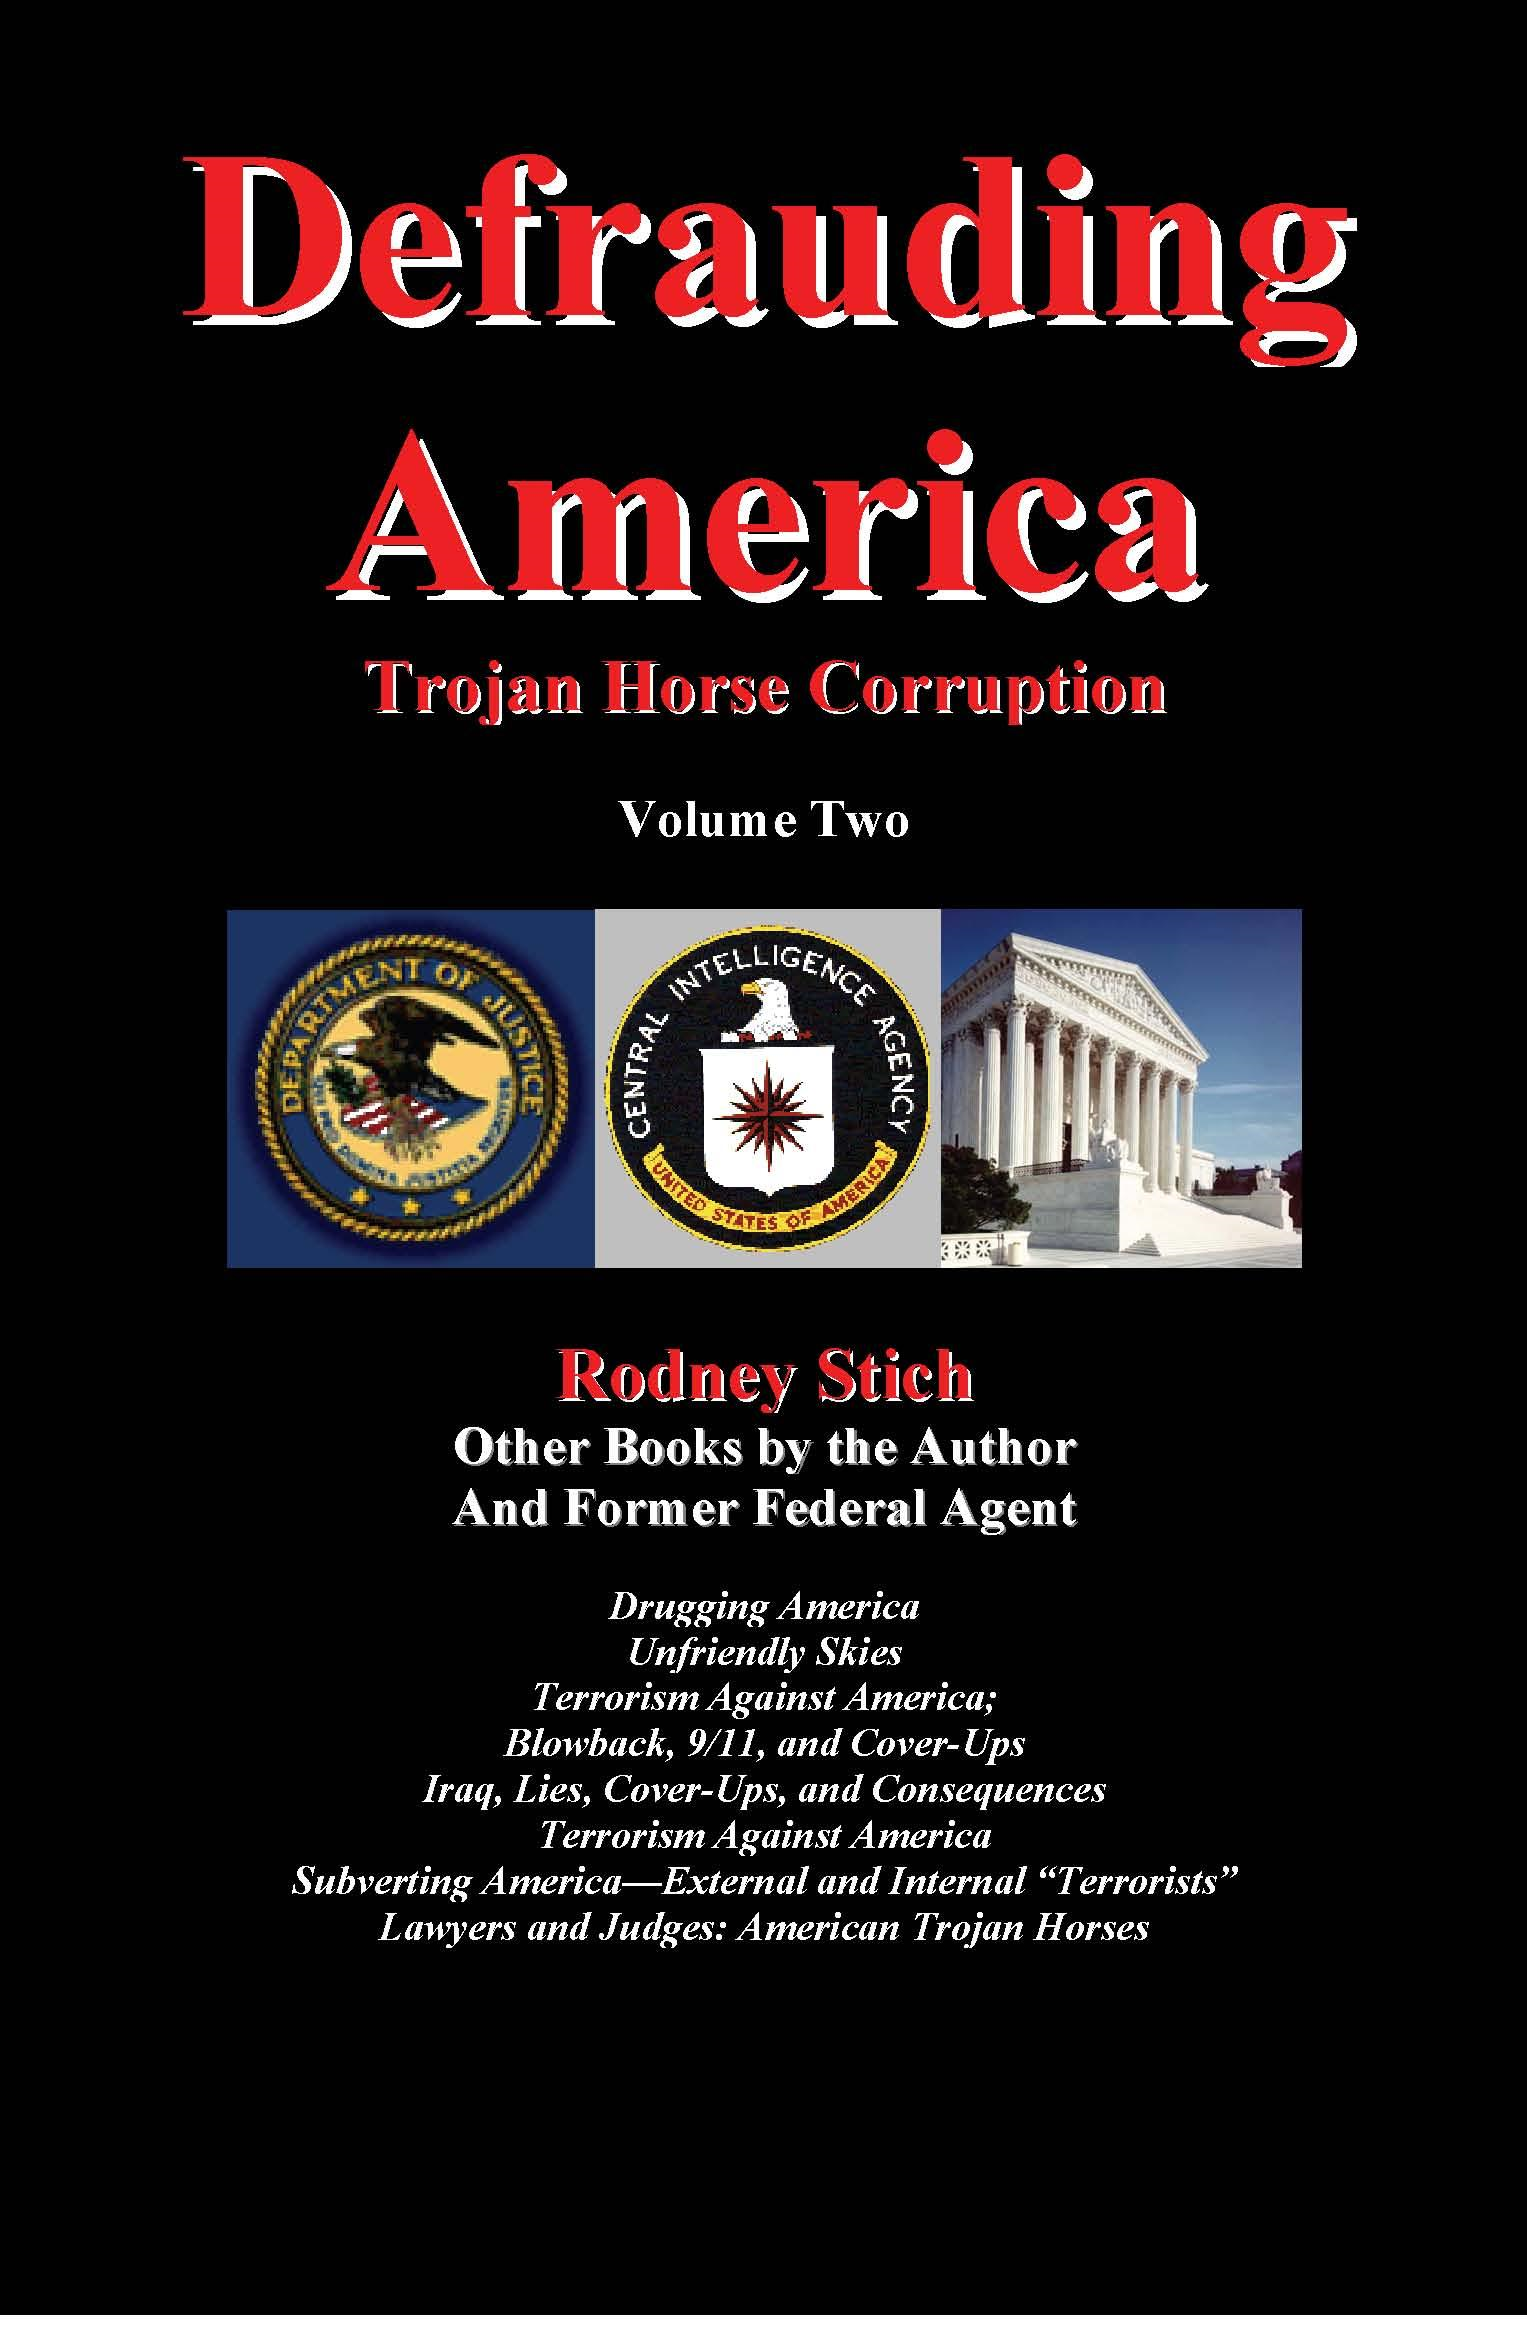 Defrauding America, Vol. Two By: Rodney Stich